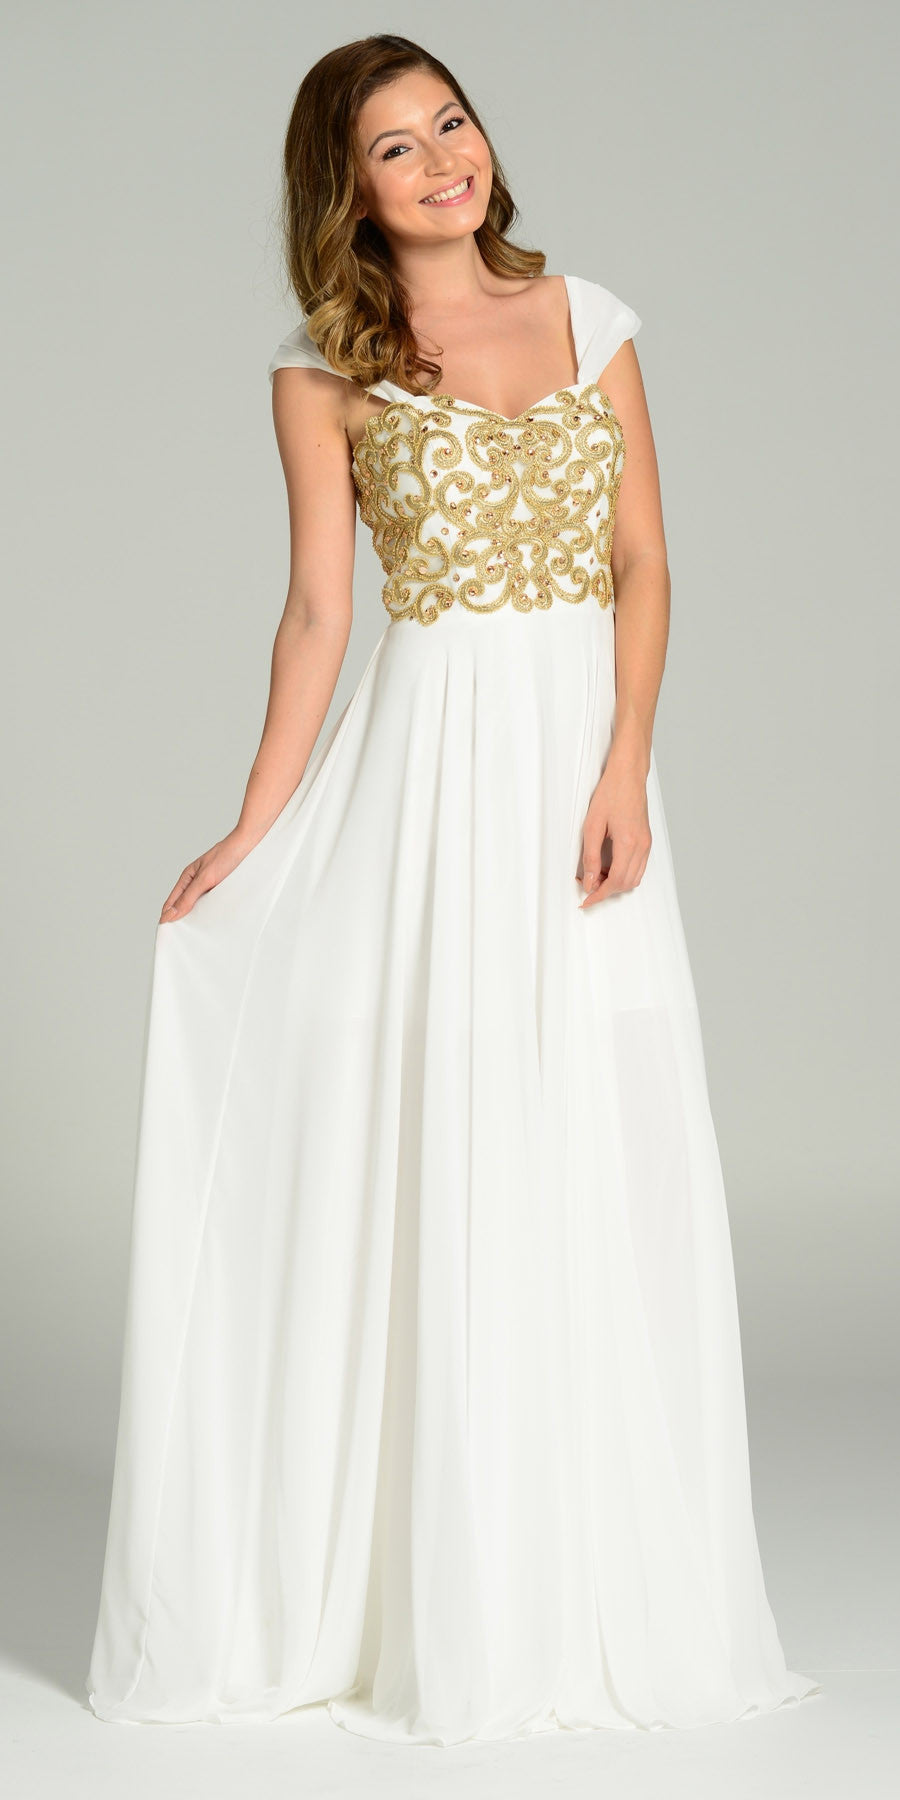 91e58242aaa5 Full Length Chiffon Spanish Style Off White Gold Dress Off Shoulder Lace  Applique. Tap to expand